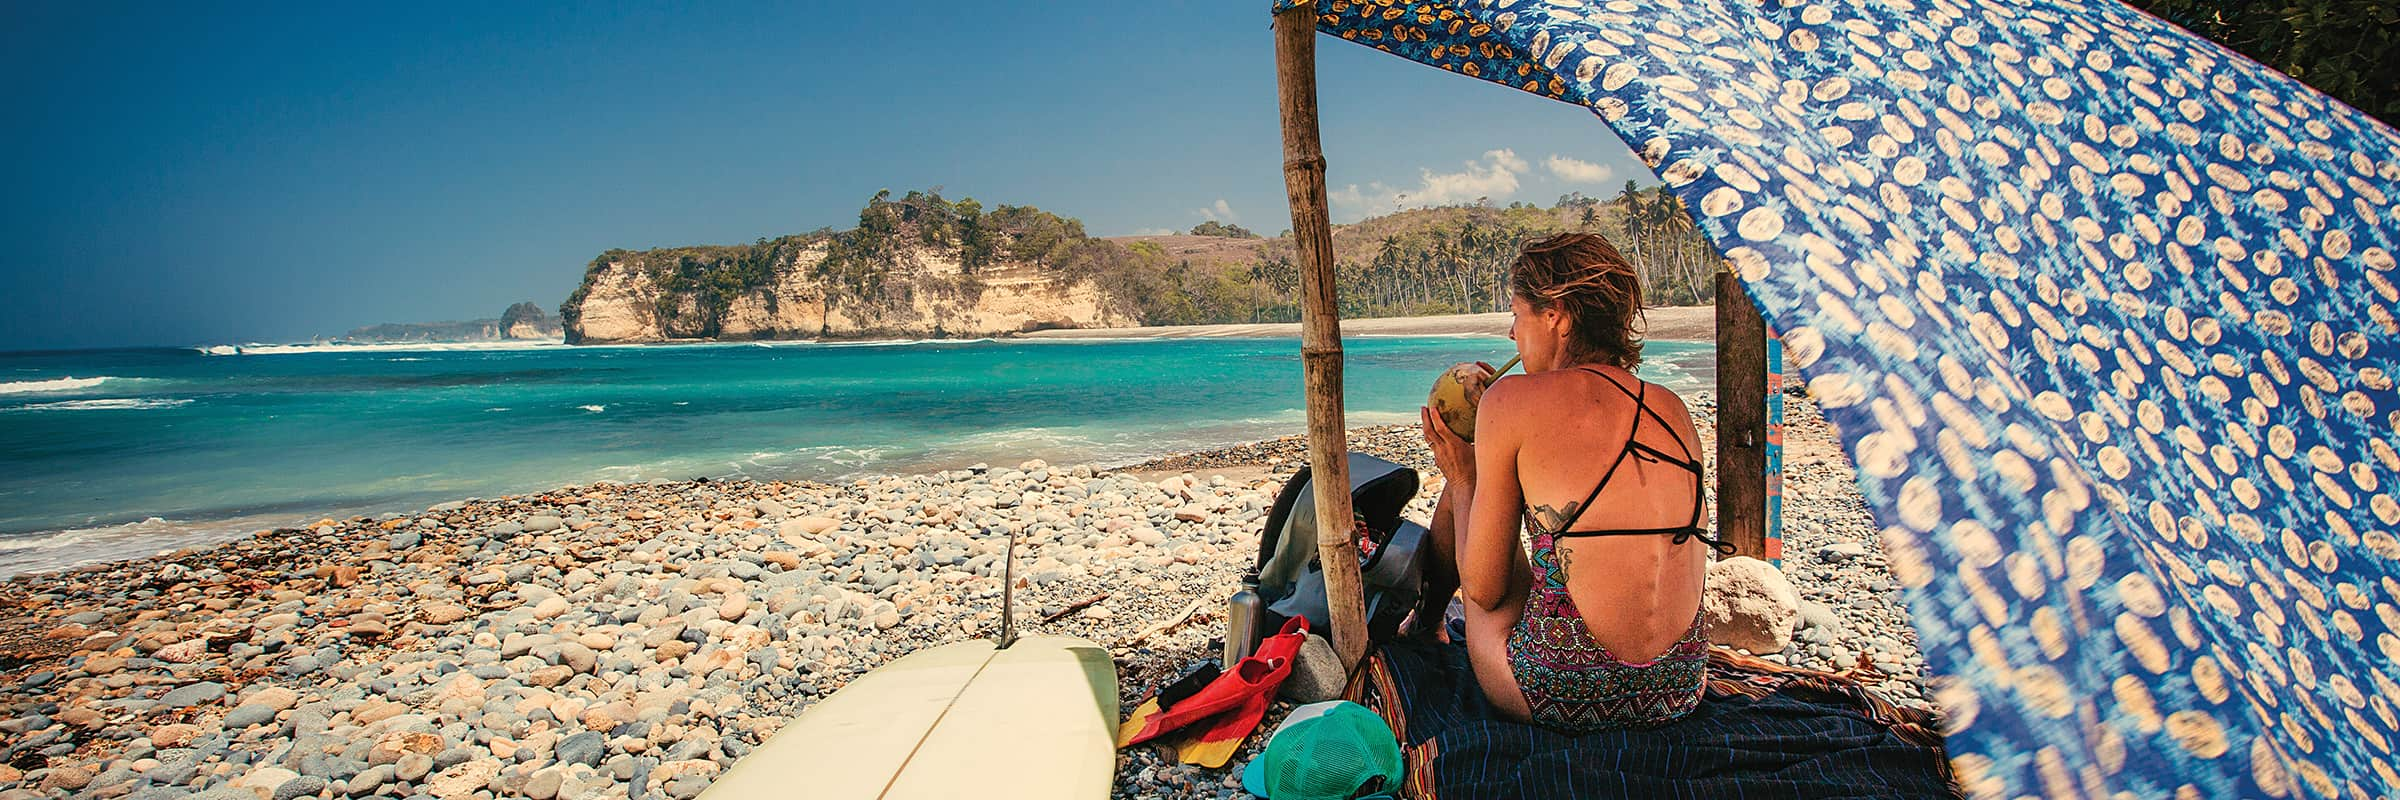 Patagonia, Surfing, Swimwear. Discover Patagonia's Fair Trade & Recycled Swimwear